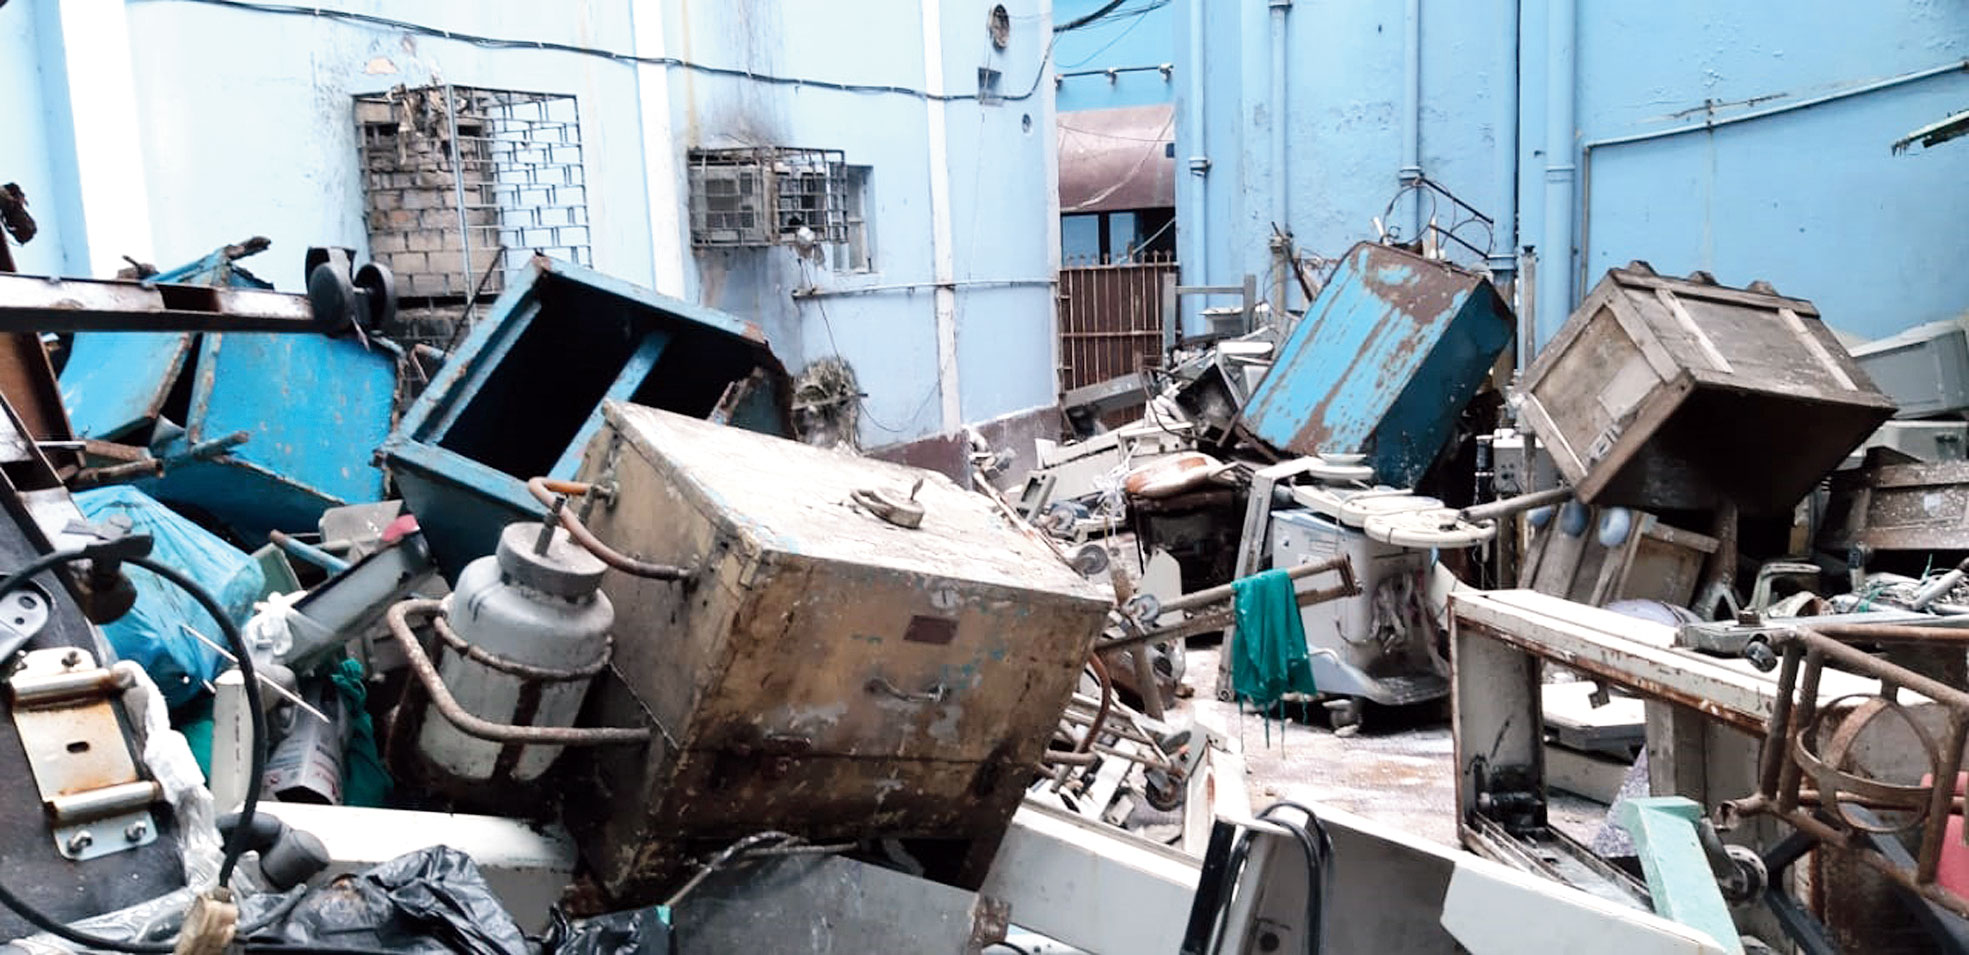 Wooden furniture, pipes, rods and other building materials dumped inside RG Kar hospital